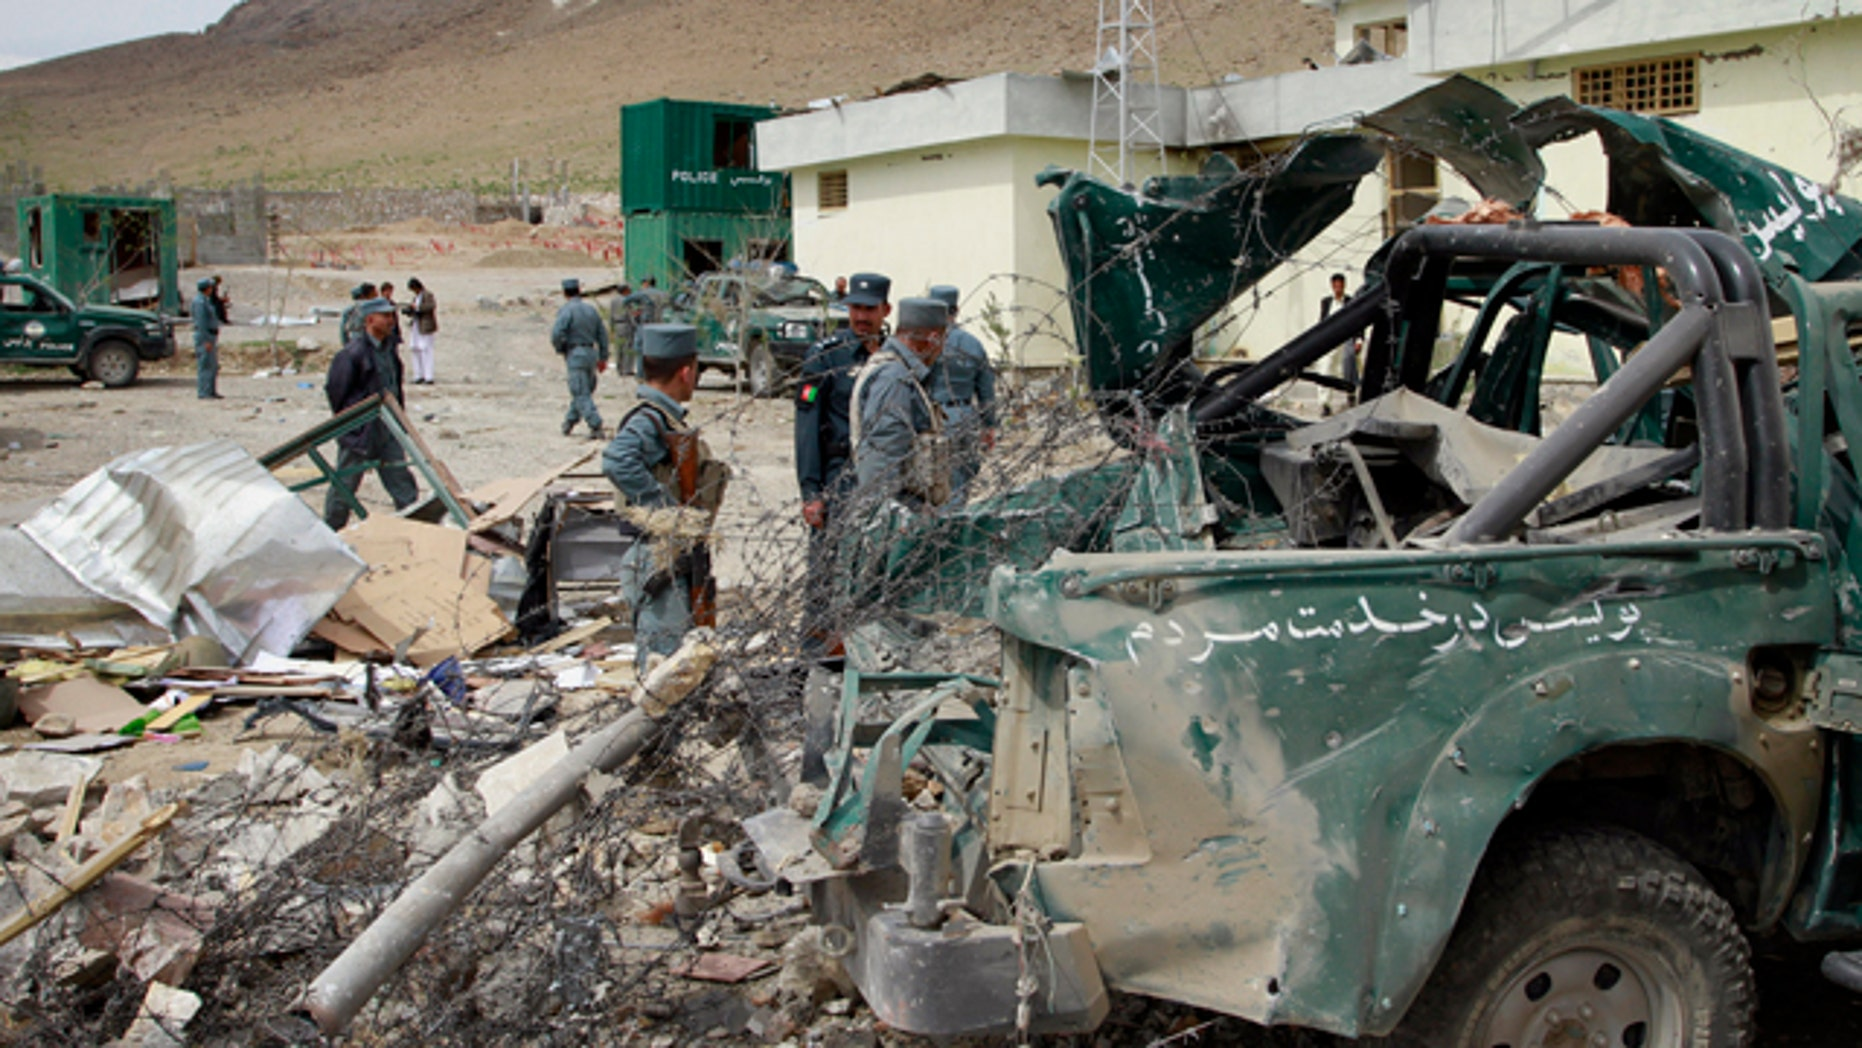 April 14: Afghan police men and officials stand close to a damaged police vehicle at the scene of a suicide car bomb explosion on the out skirts of Kabul, Afghanistan. A suicide car bomber detonated a truck of explosives covered in wood at a government compound in Musayi district, about 40 miles south of the Afghan capital, according Daud Amin, deputy police chief in Kabul. Six members of the Afghan national security forces were injured, he said. (AP)